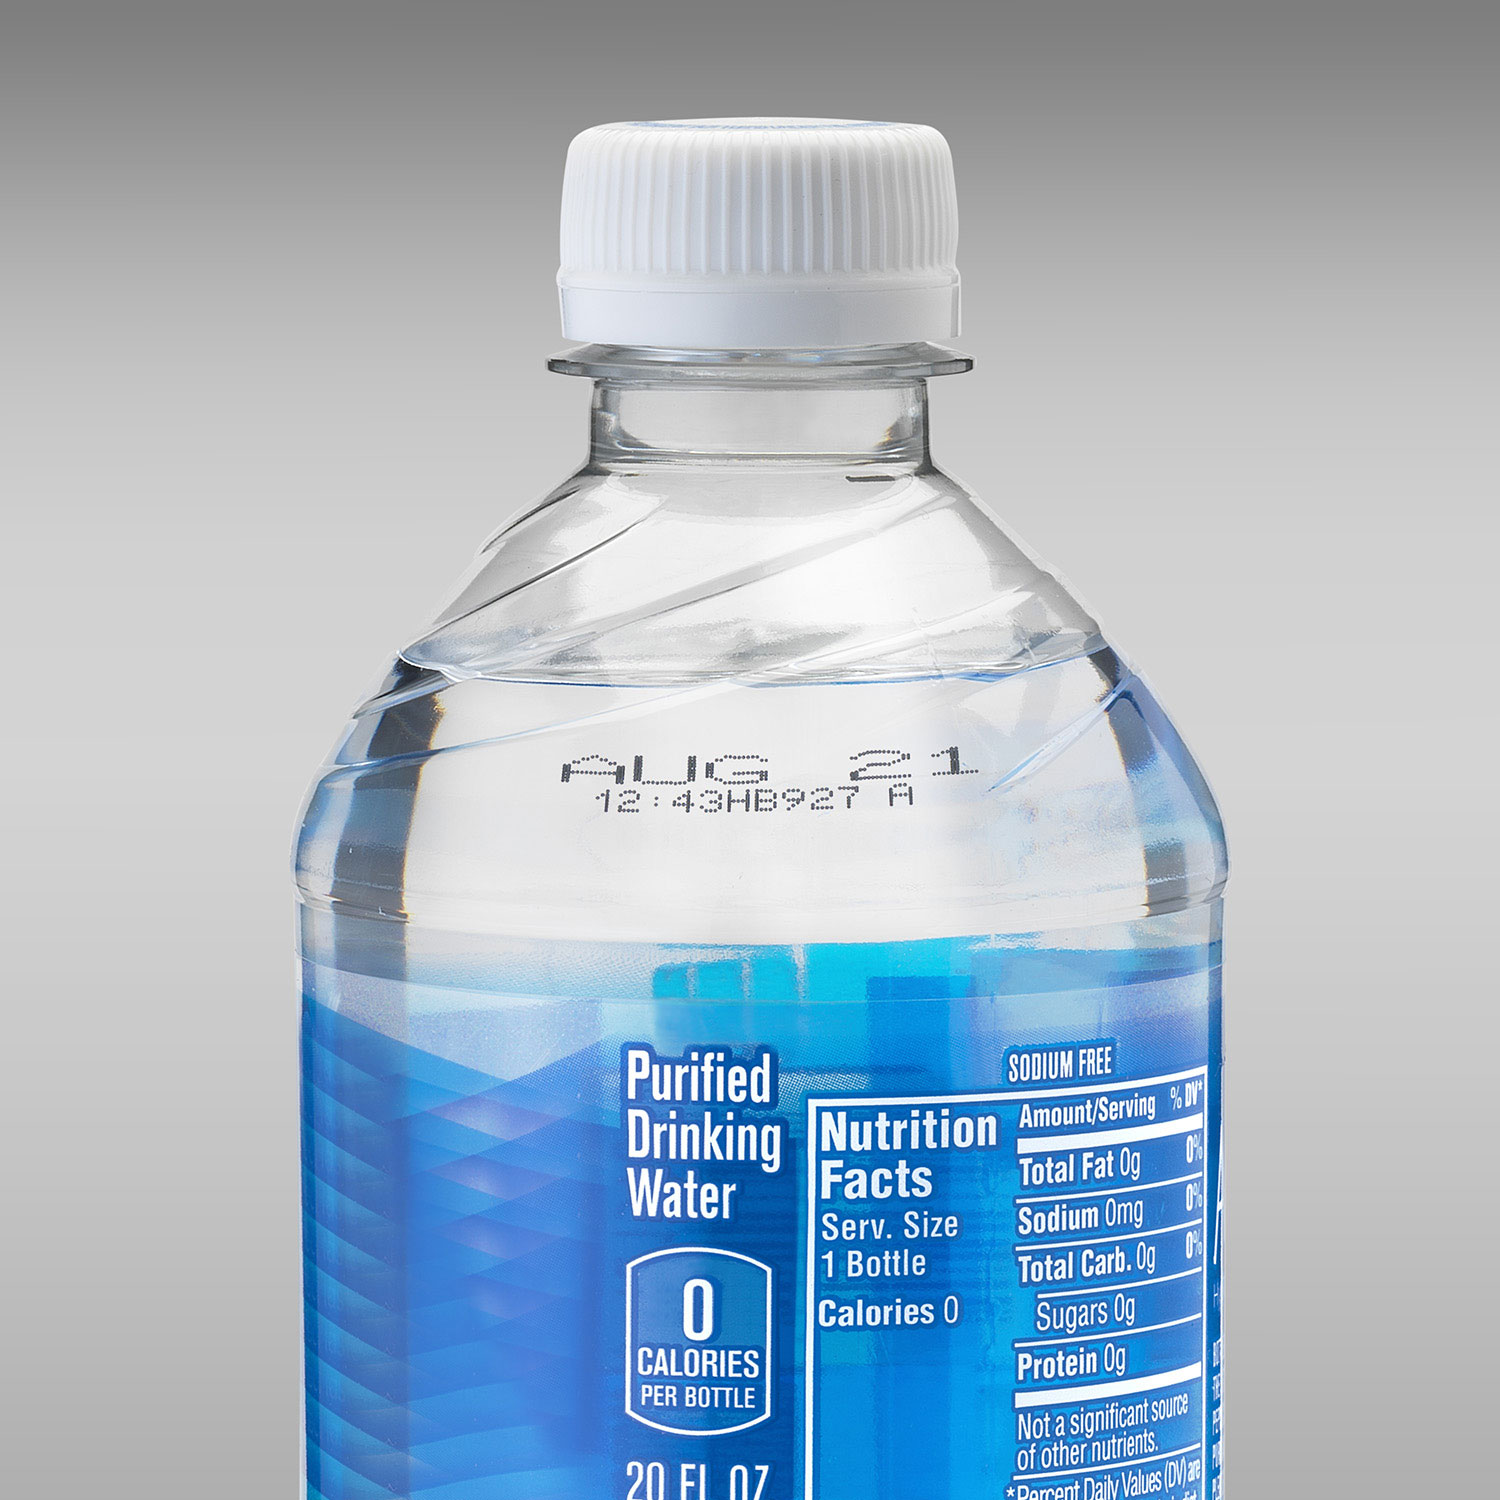 Coding date on PET bottle, Inkjet printing on plastic bottle